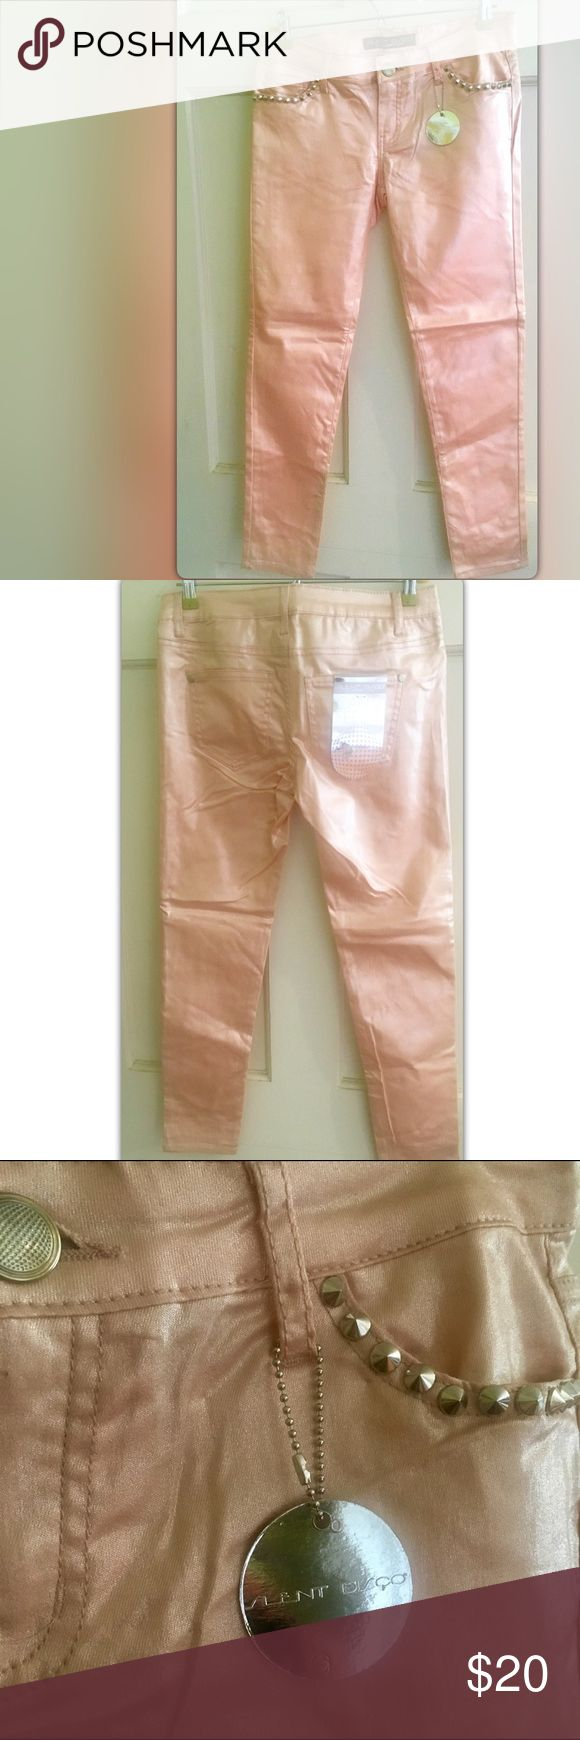 """✨ Shimmery Skinny Jeans ✨ Size 9 1/2 off bundles EVERYDAY! ✨✨ Silent Disco Shimmery Skinny Jeans✨ By Celebrity Pink Pretty, shimmery peach. New!! Size: 9 Waist: 16"""" flat across  Rise: 7 1/2"""" Inseam: 27"""" New! ✨ fabric content in photos .. they do have stretch ✨  ✨Bundle any 2 or more items and save 50% off✨  Respectful offers are always welcome. I will not accept offers for less than 1/2 off.   Thanks for looking! Celebrity Pink Jeans Skinny"""